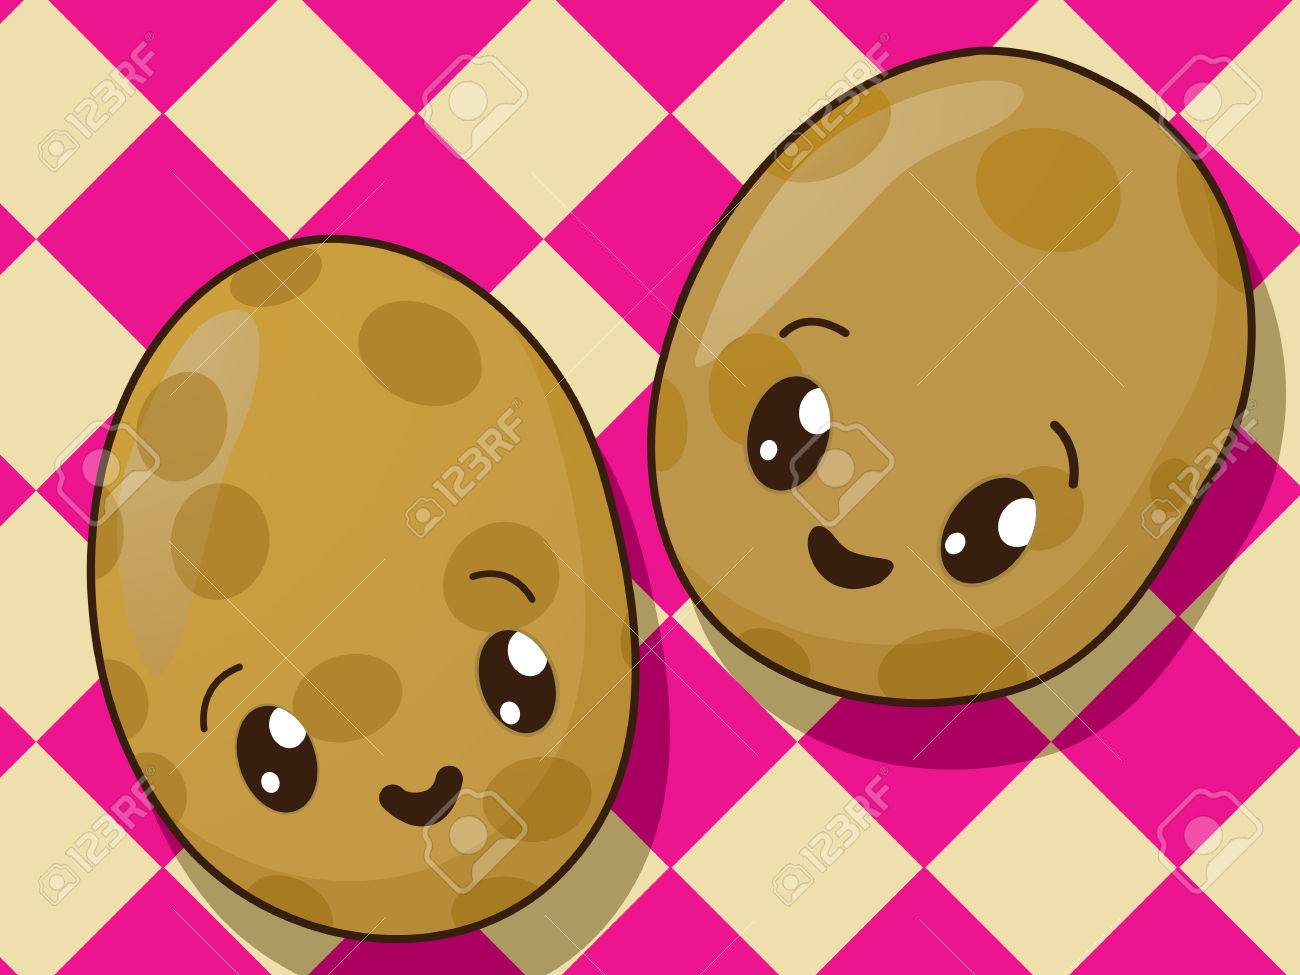 Kawaii Style Drawing Potato Icons